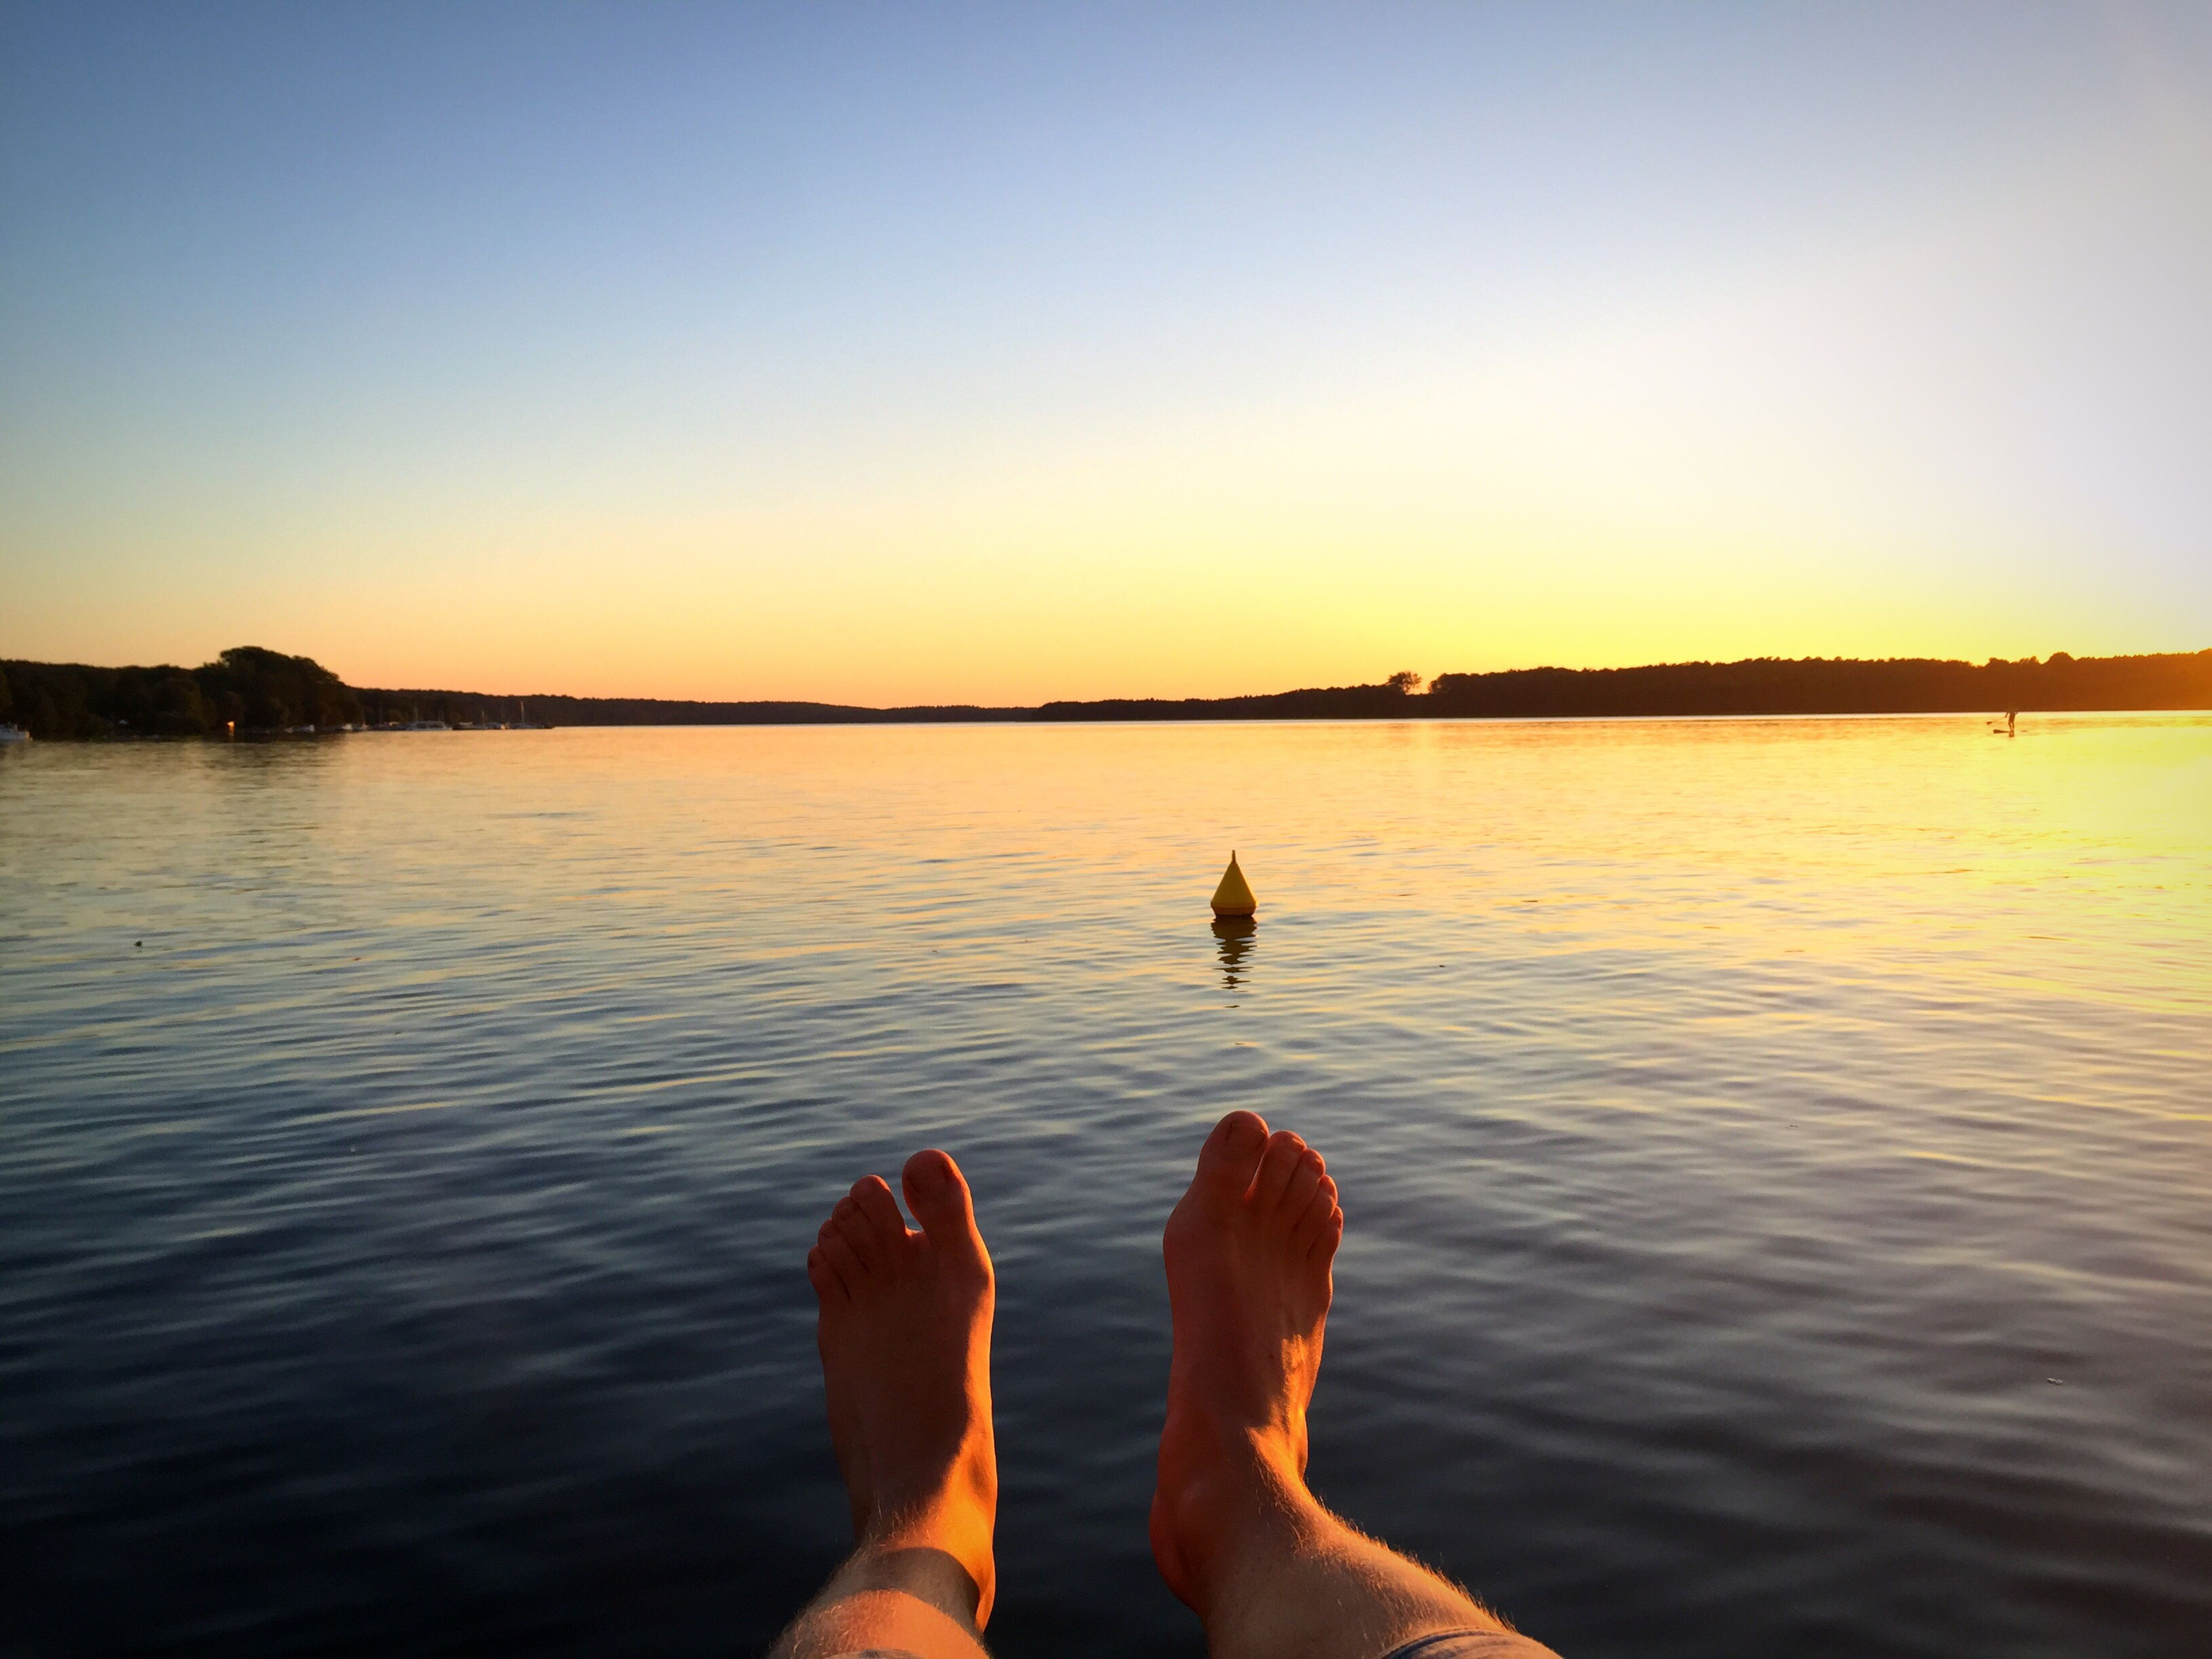 water, low section, person, sunset, personal perspective, rippled, barefoot, lake, copy space, relaxation, clear sky, tranquility, orange color, calm, vacations, tranquil scene, idyllic, scenics, solitude, sea, nature, beauty in nature, human foot, waterfront, outdoors, blue, summer, ocean, escapism, weekend activities, remote